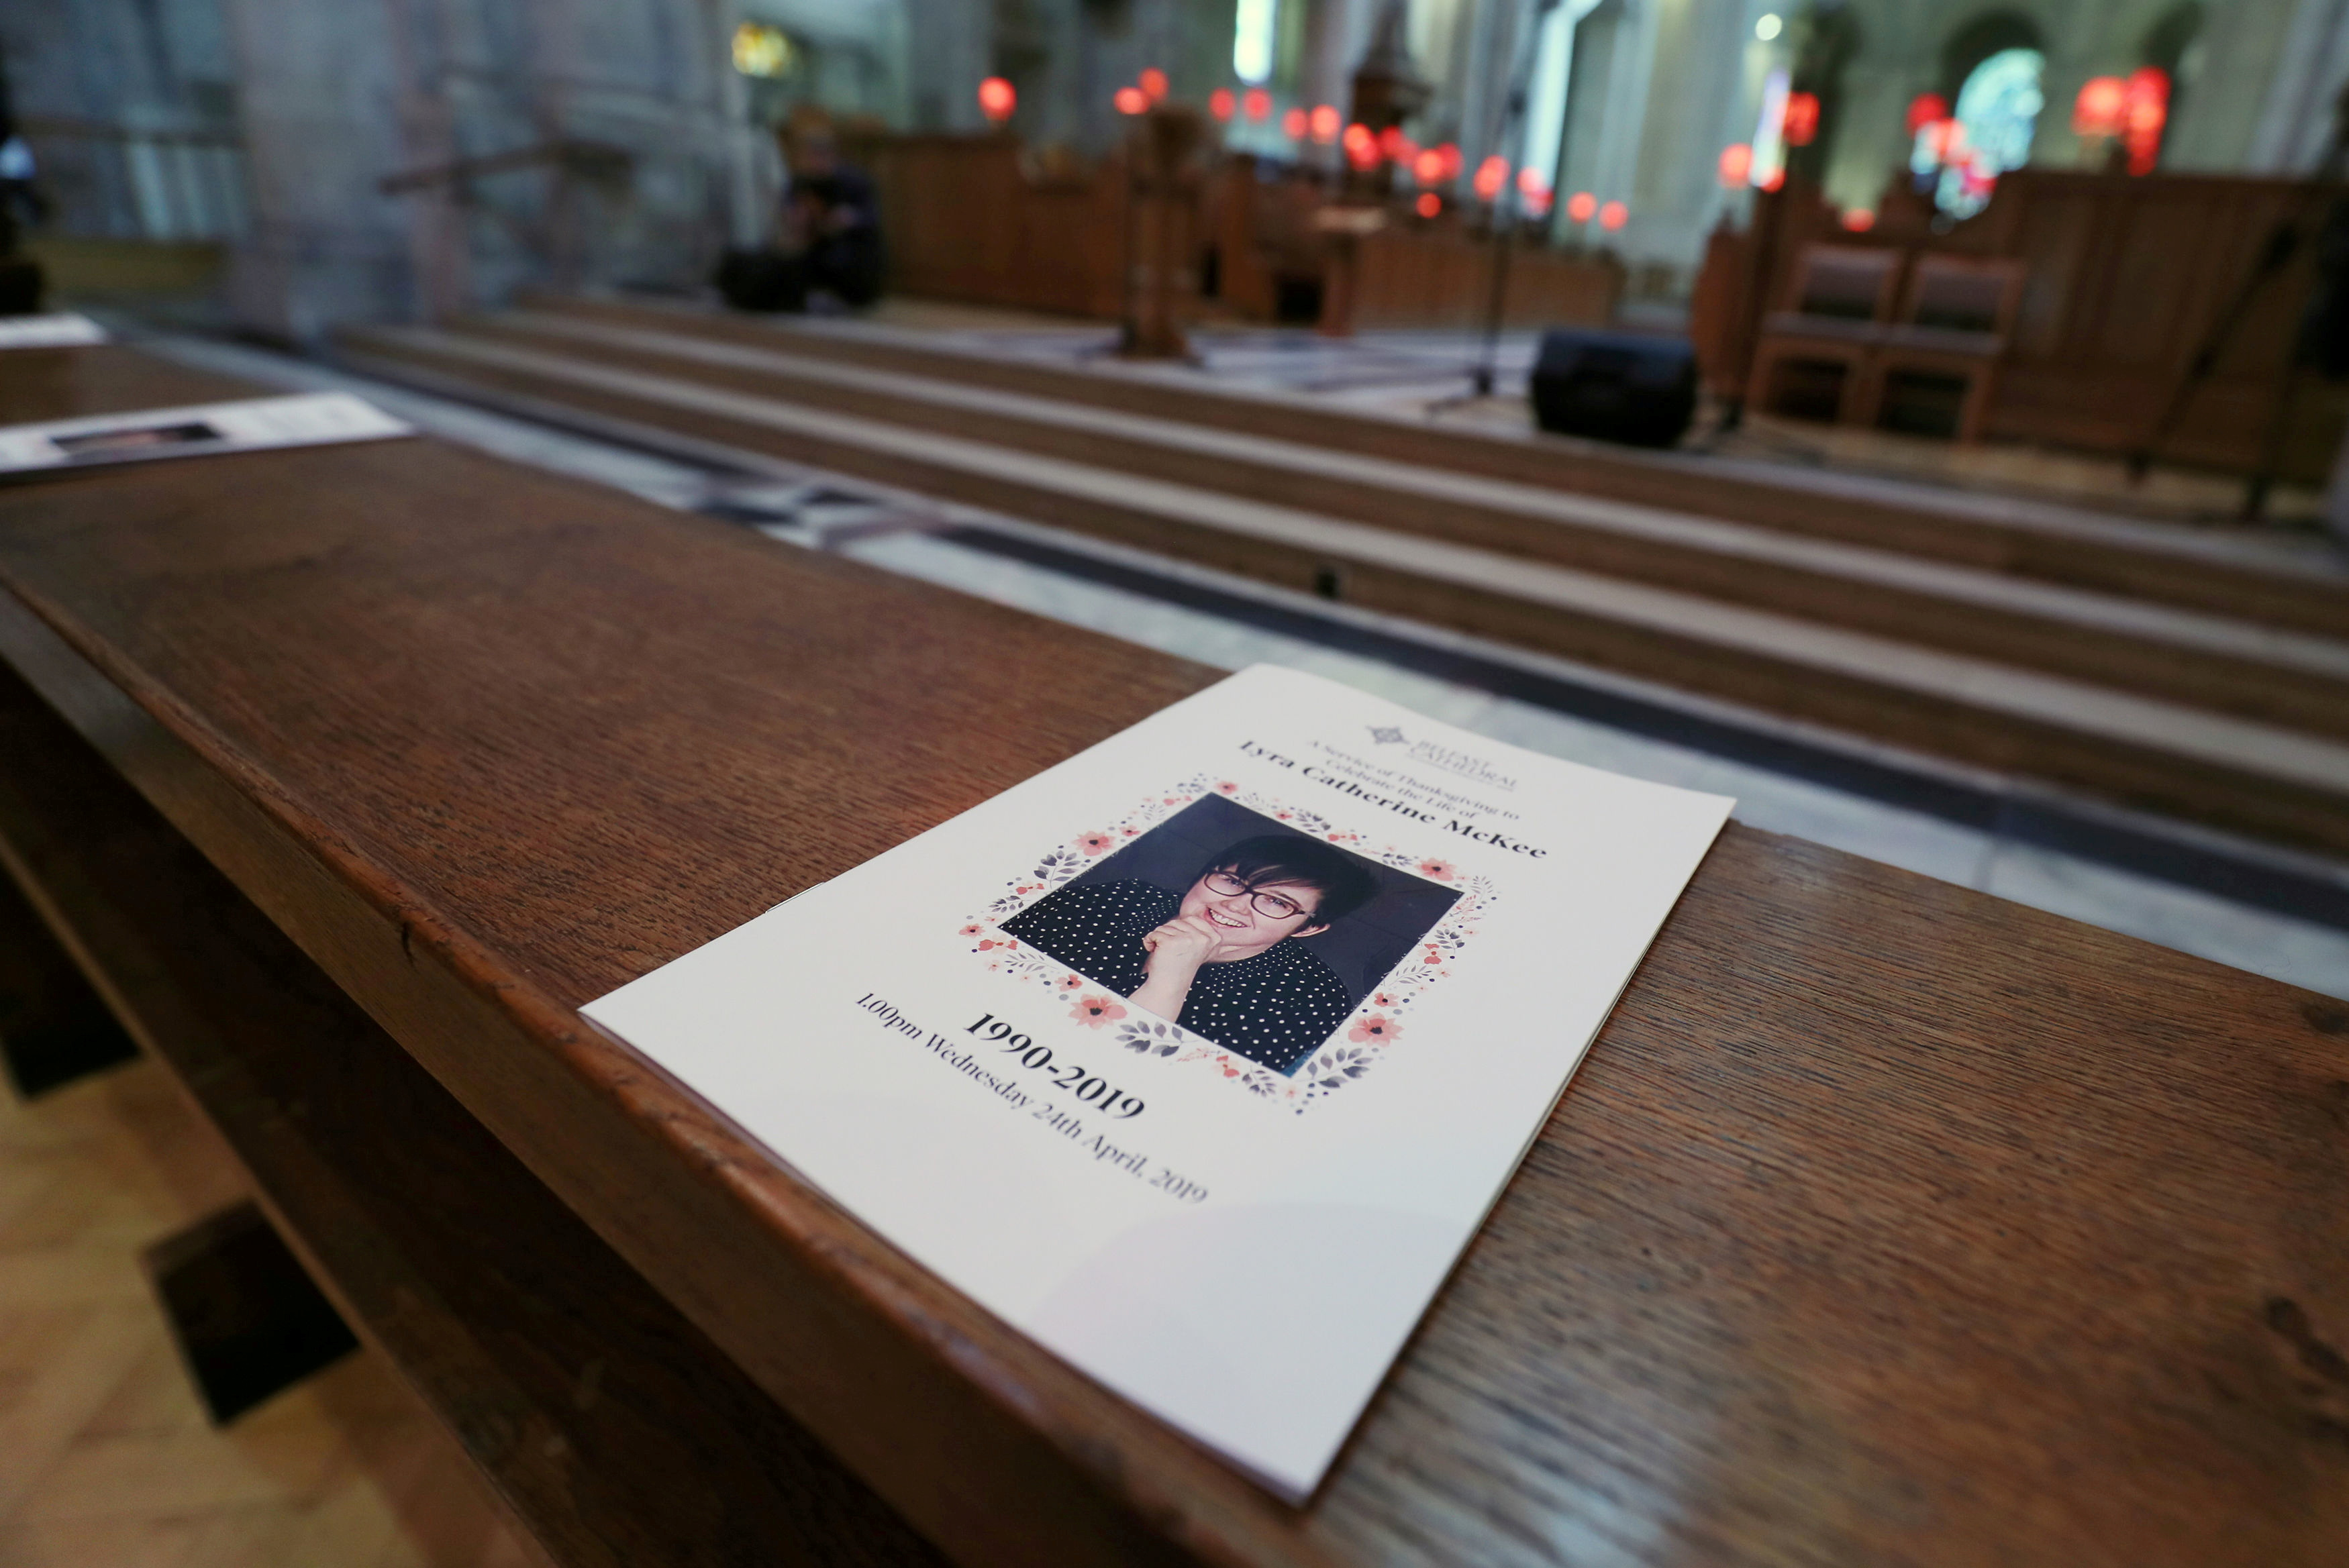 The service sheet for the funeral of murdered journalist Lyra McKee lies on a pew at St Anne's Cathedral in Belfast, Northern Ireland April 24, 2019. Brian Lawless/Pool via REUTERS/File Photo